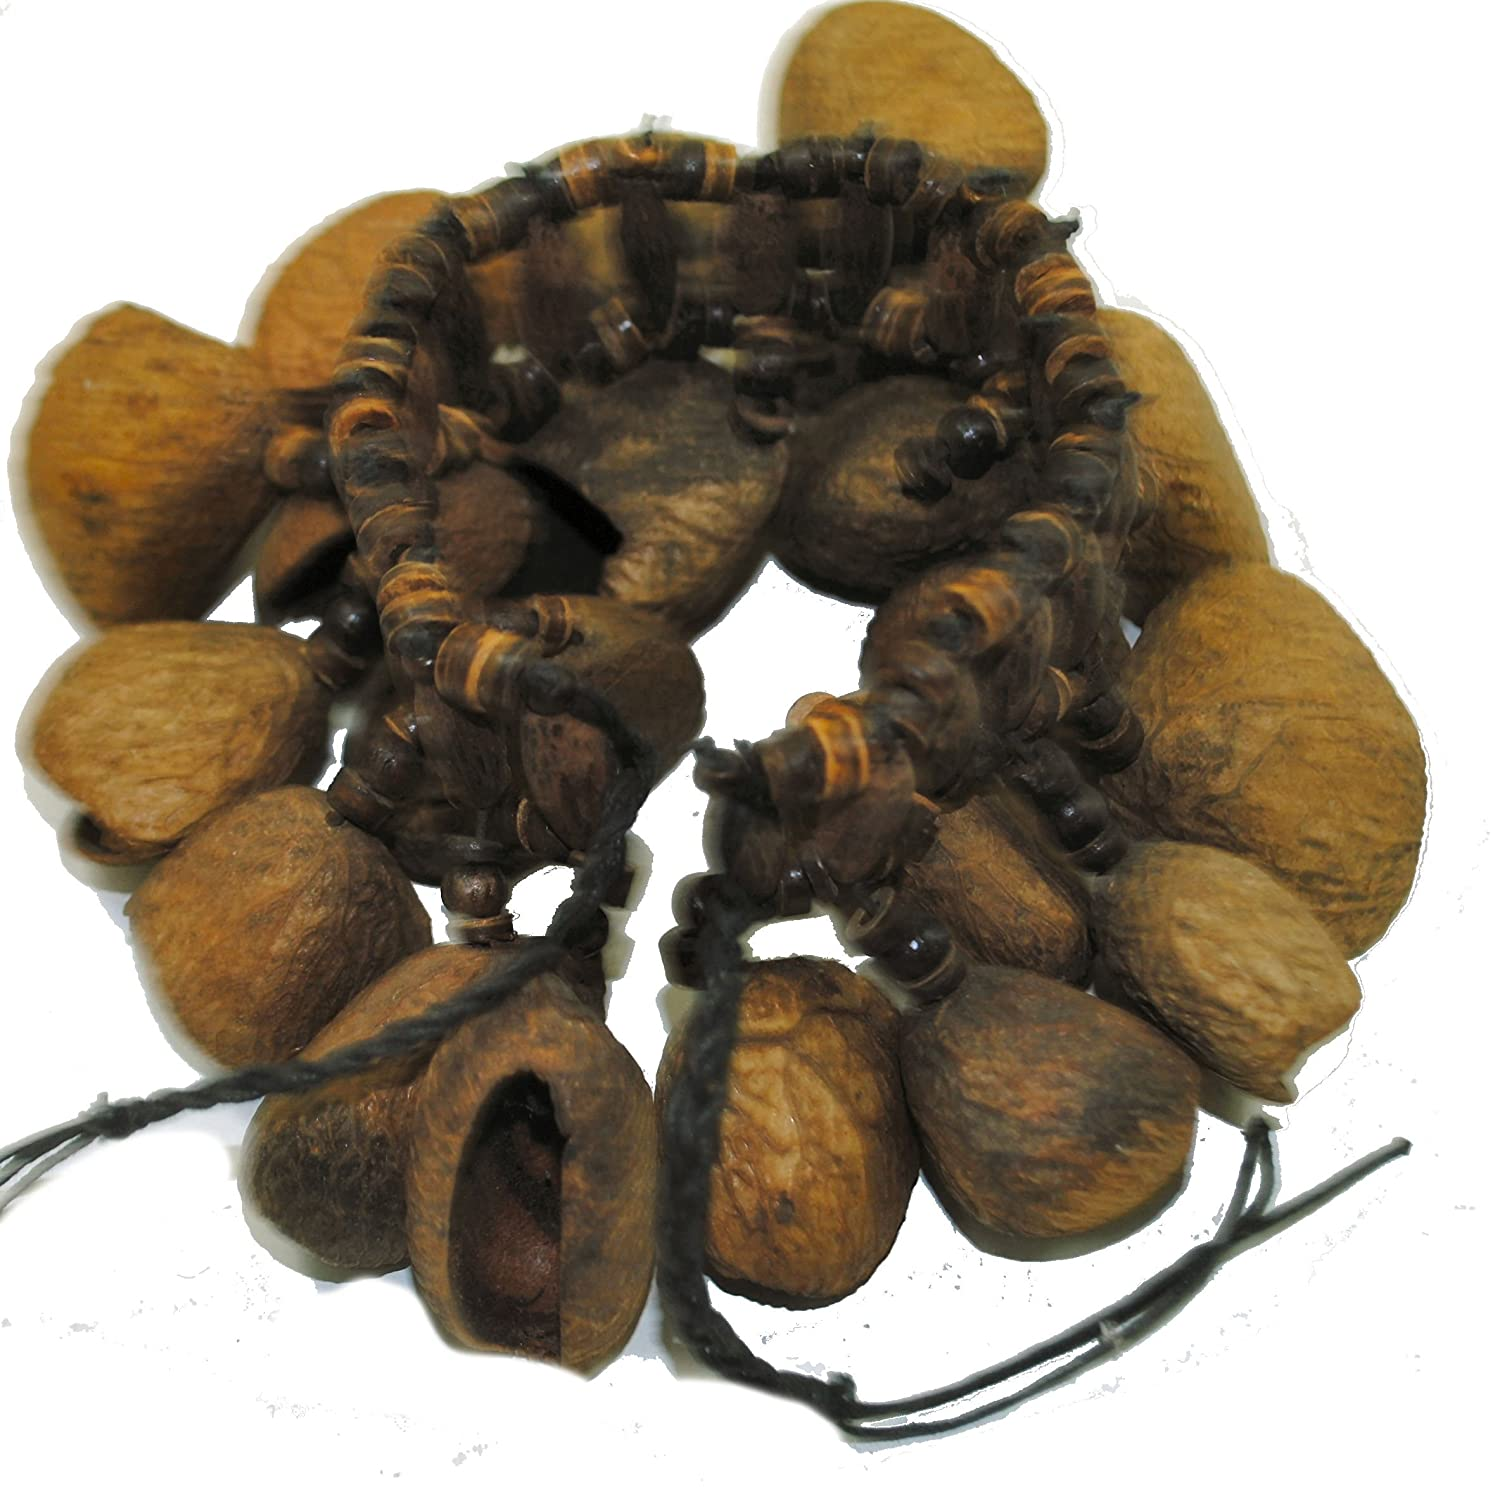 Fair Trade Andean Shaman Rattle Maraca Calabash Foot Shaker Tapar Nuts R116Foot